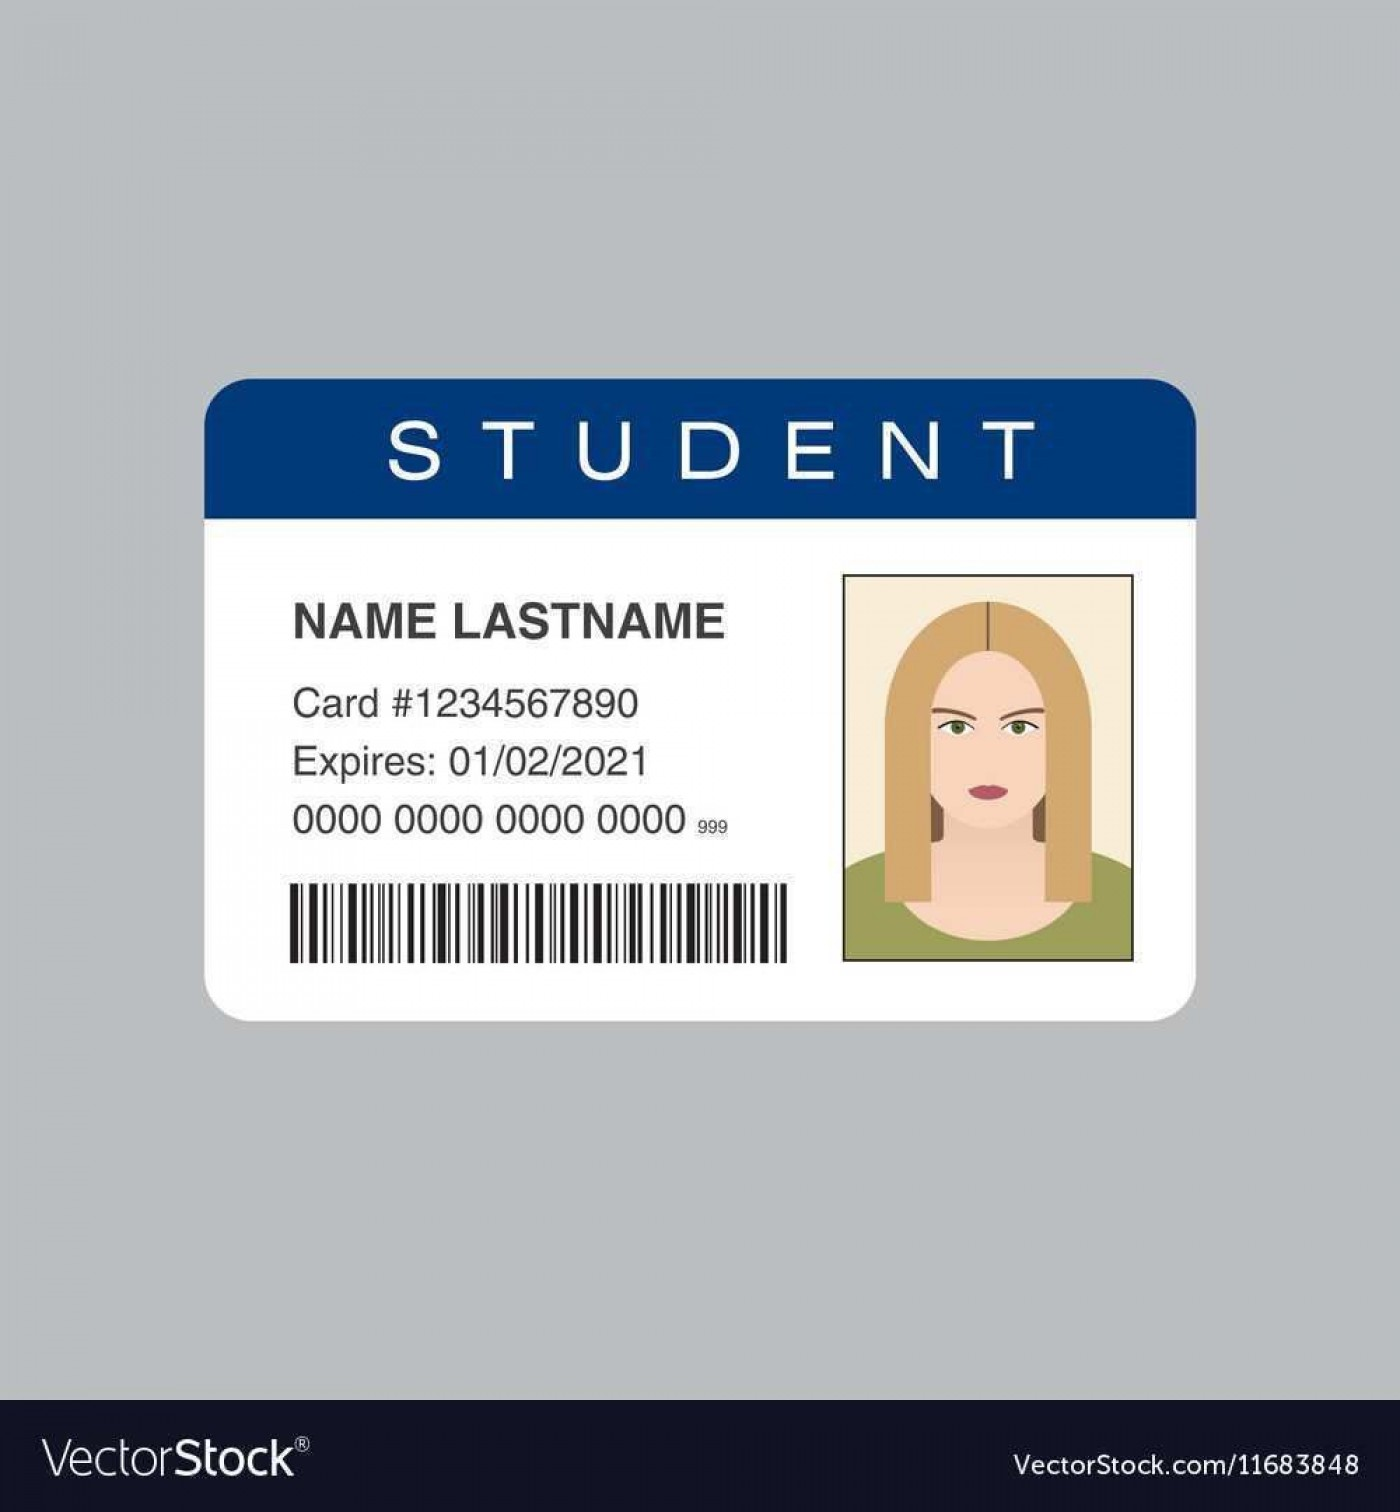 002 Fantastic Student Id Card Template High Resolution  Design Free Download Word Employee Microsoft Vertical Identity Psd1400